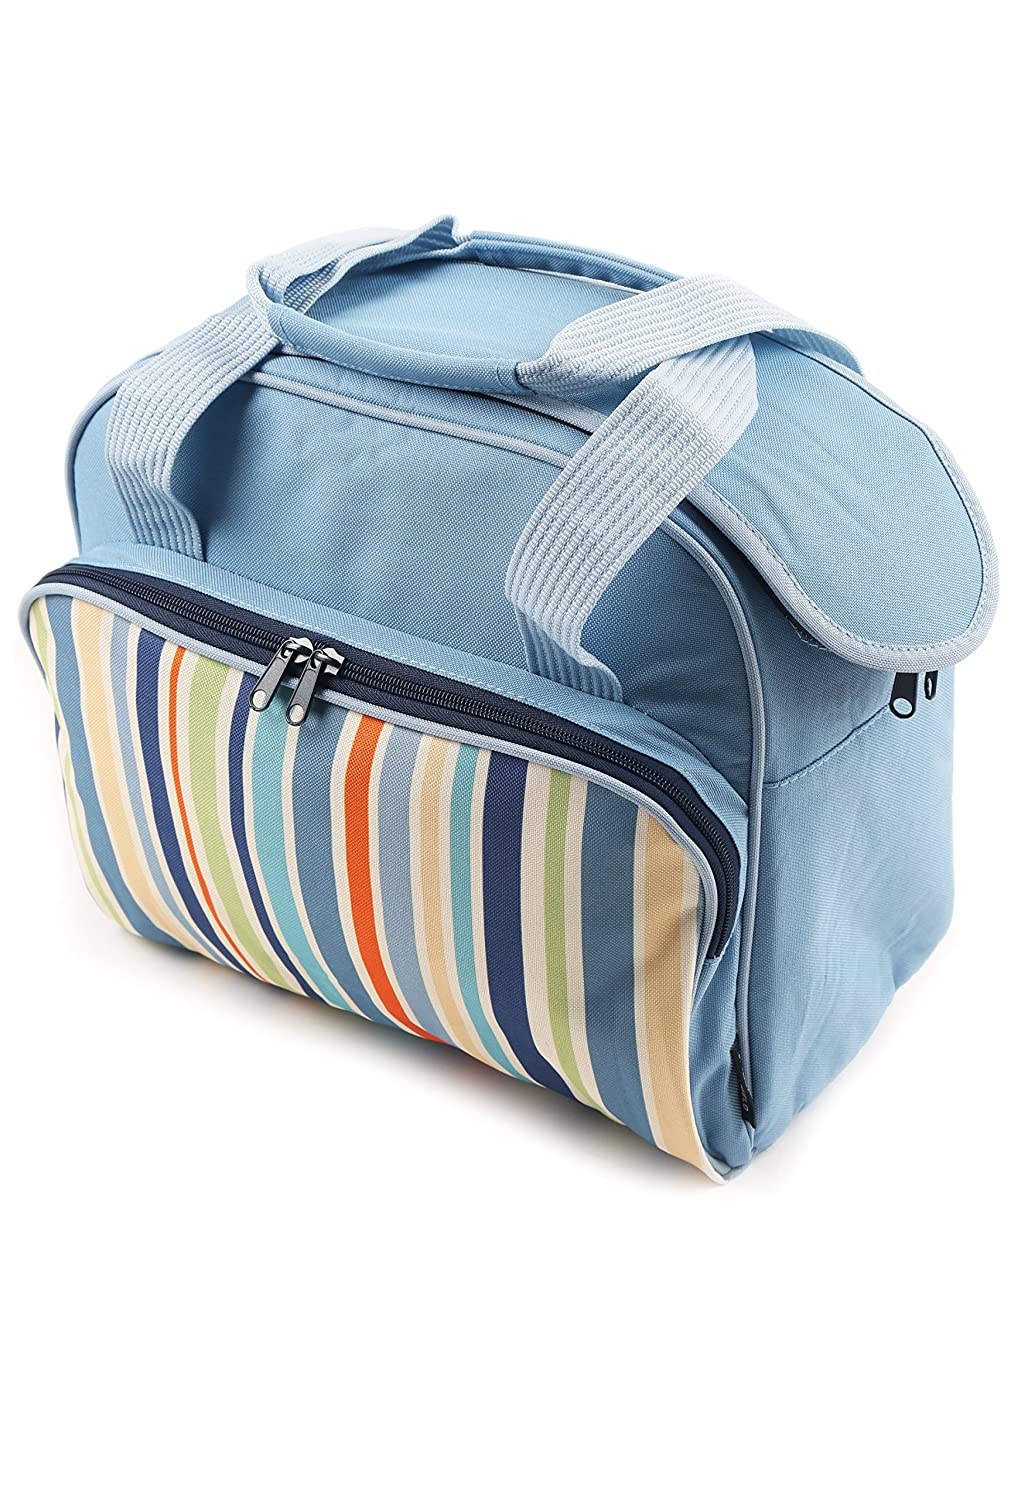 Greenfield Collection Sky Blue 2 Litre Folding Lunch Cool Bag CB011H